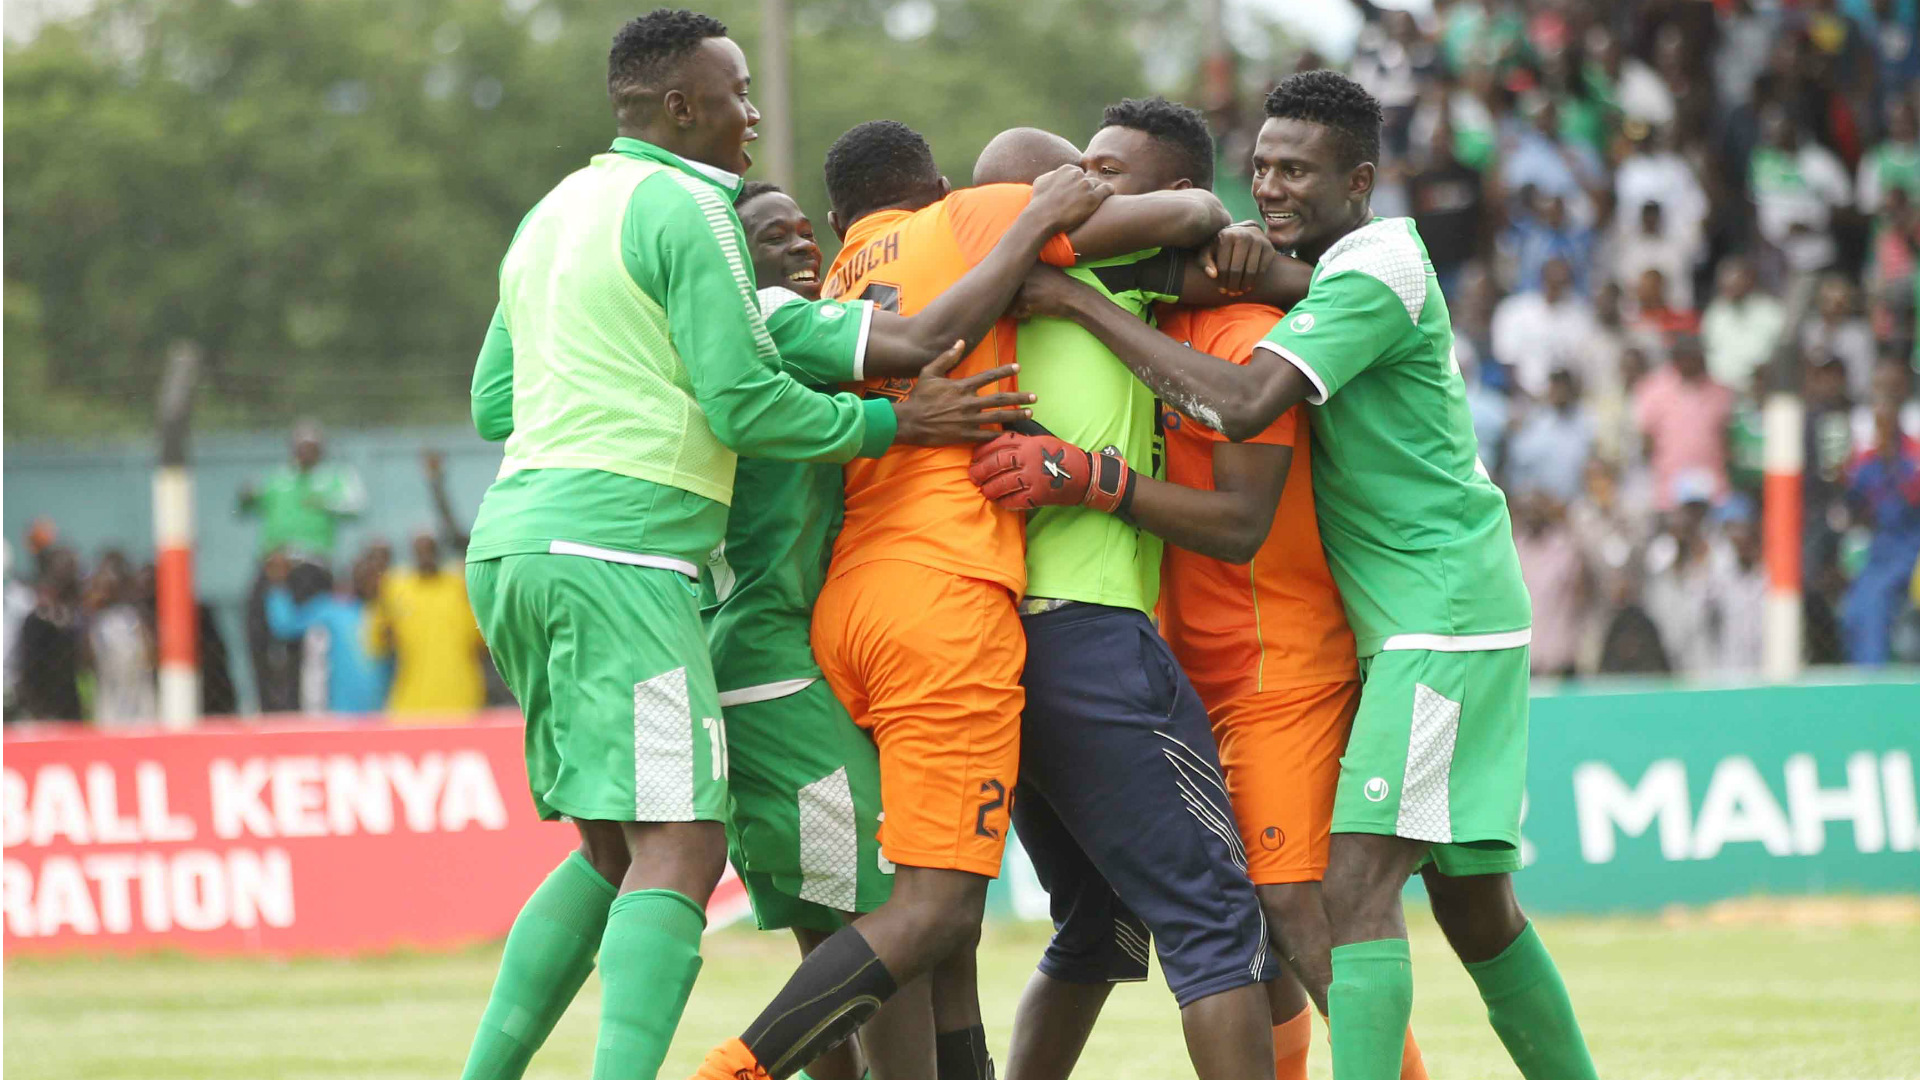 Caf Confederation Cup Group D Preview: Gor Mahia to face Rayon Sports in opener